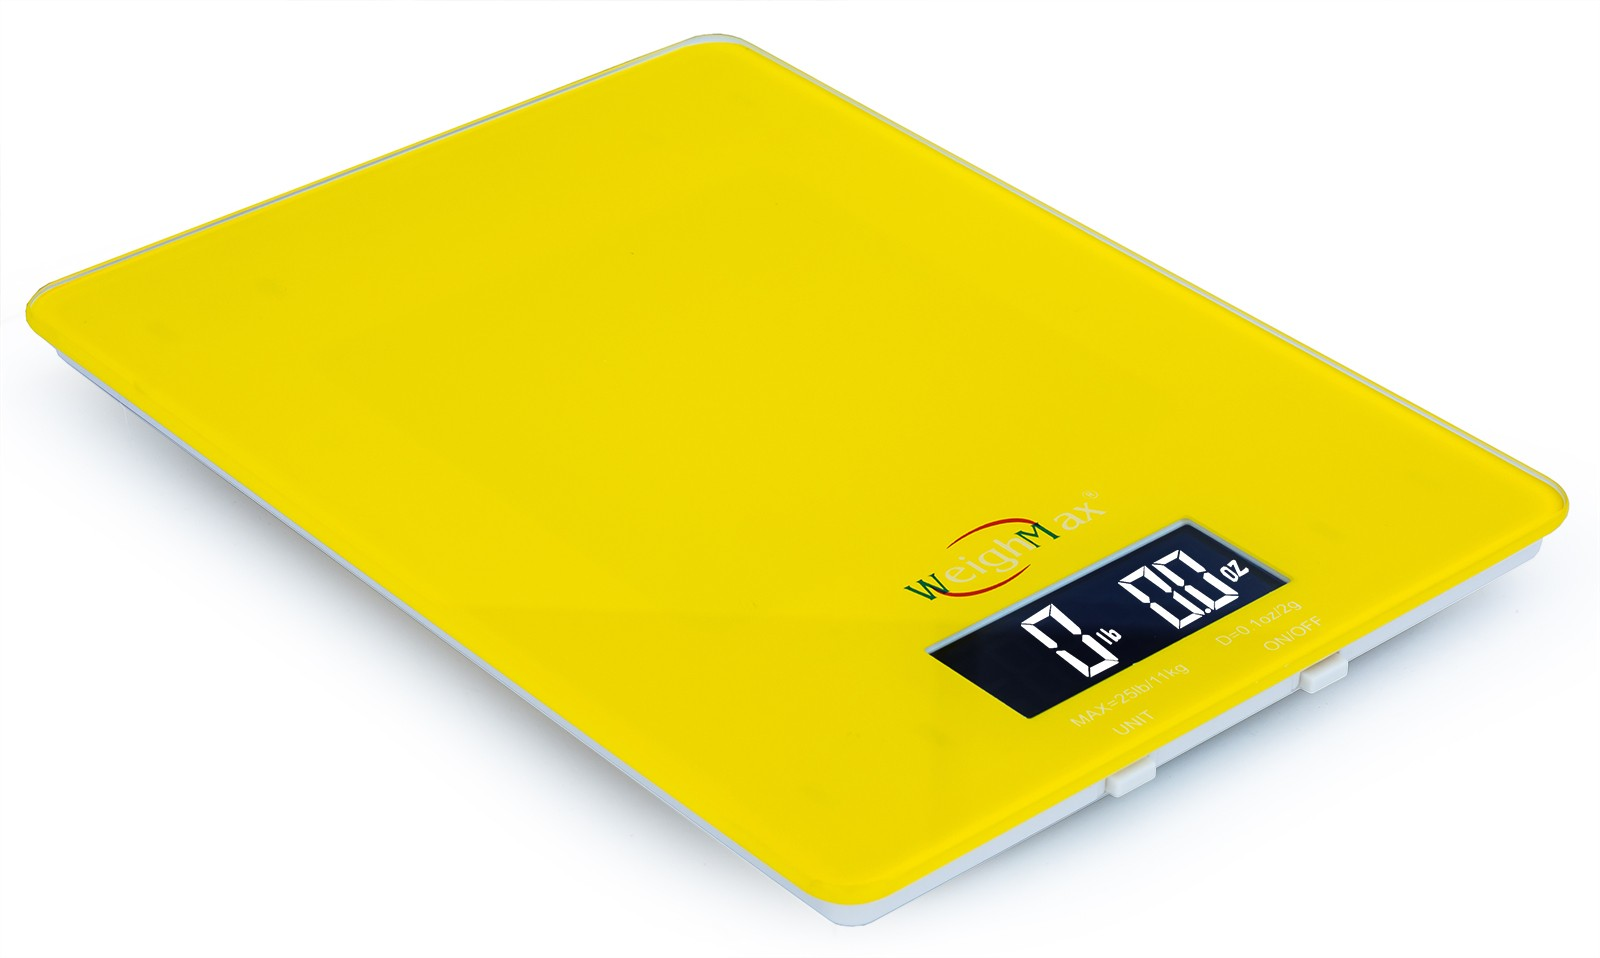 W-GY-25 YELLOW